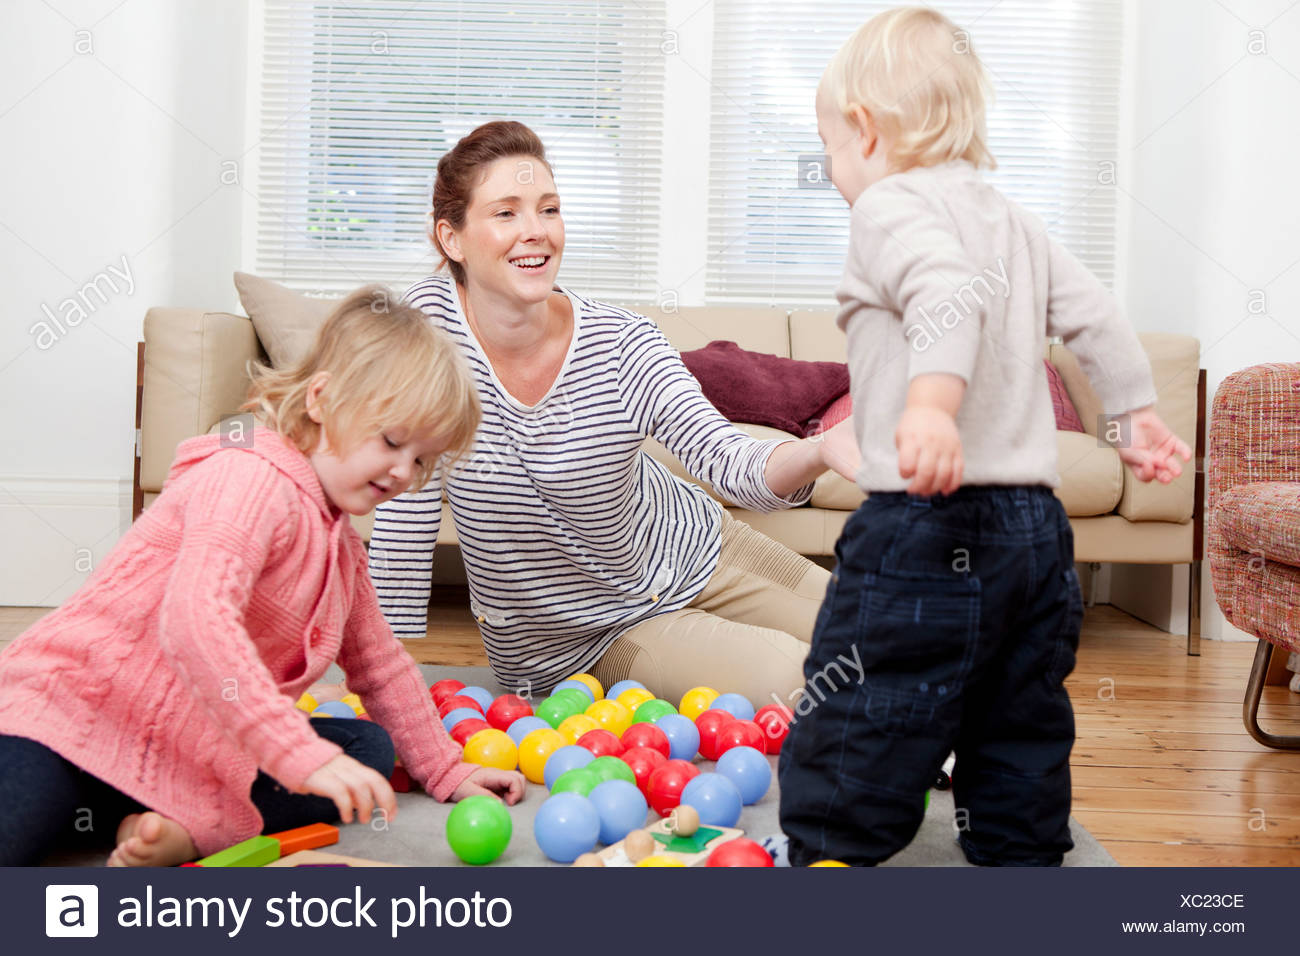 Mother and children playing with plastic balls - Stock Image